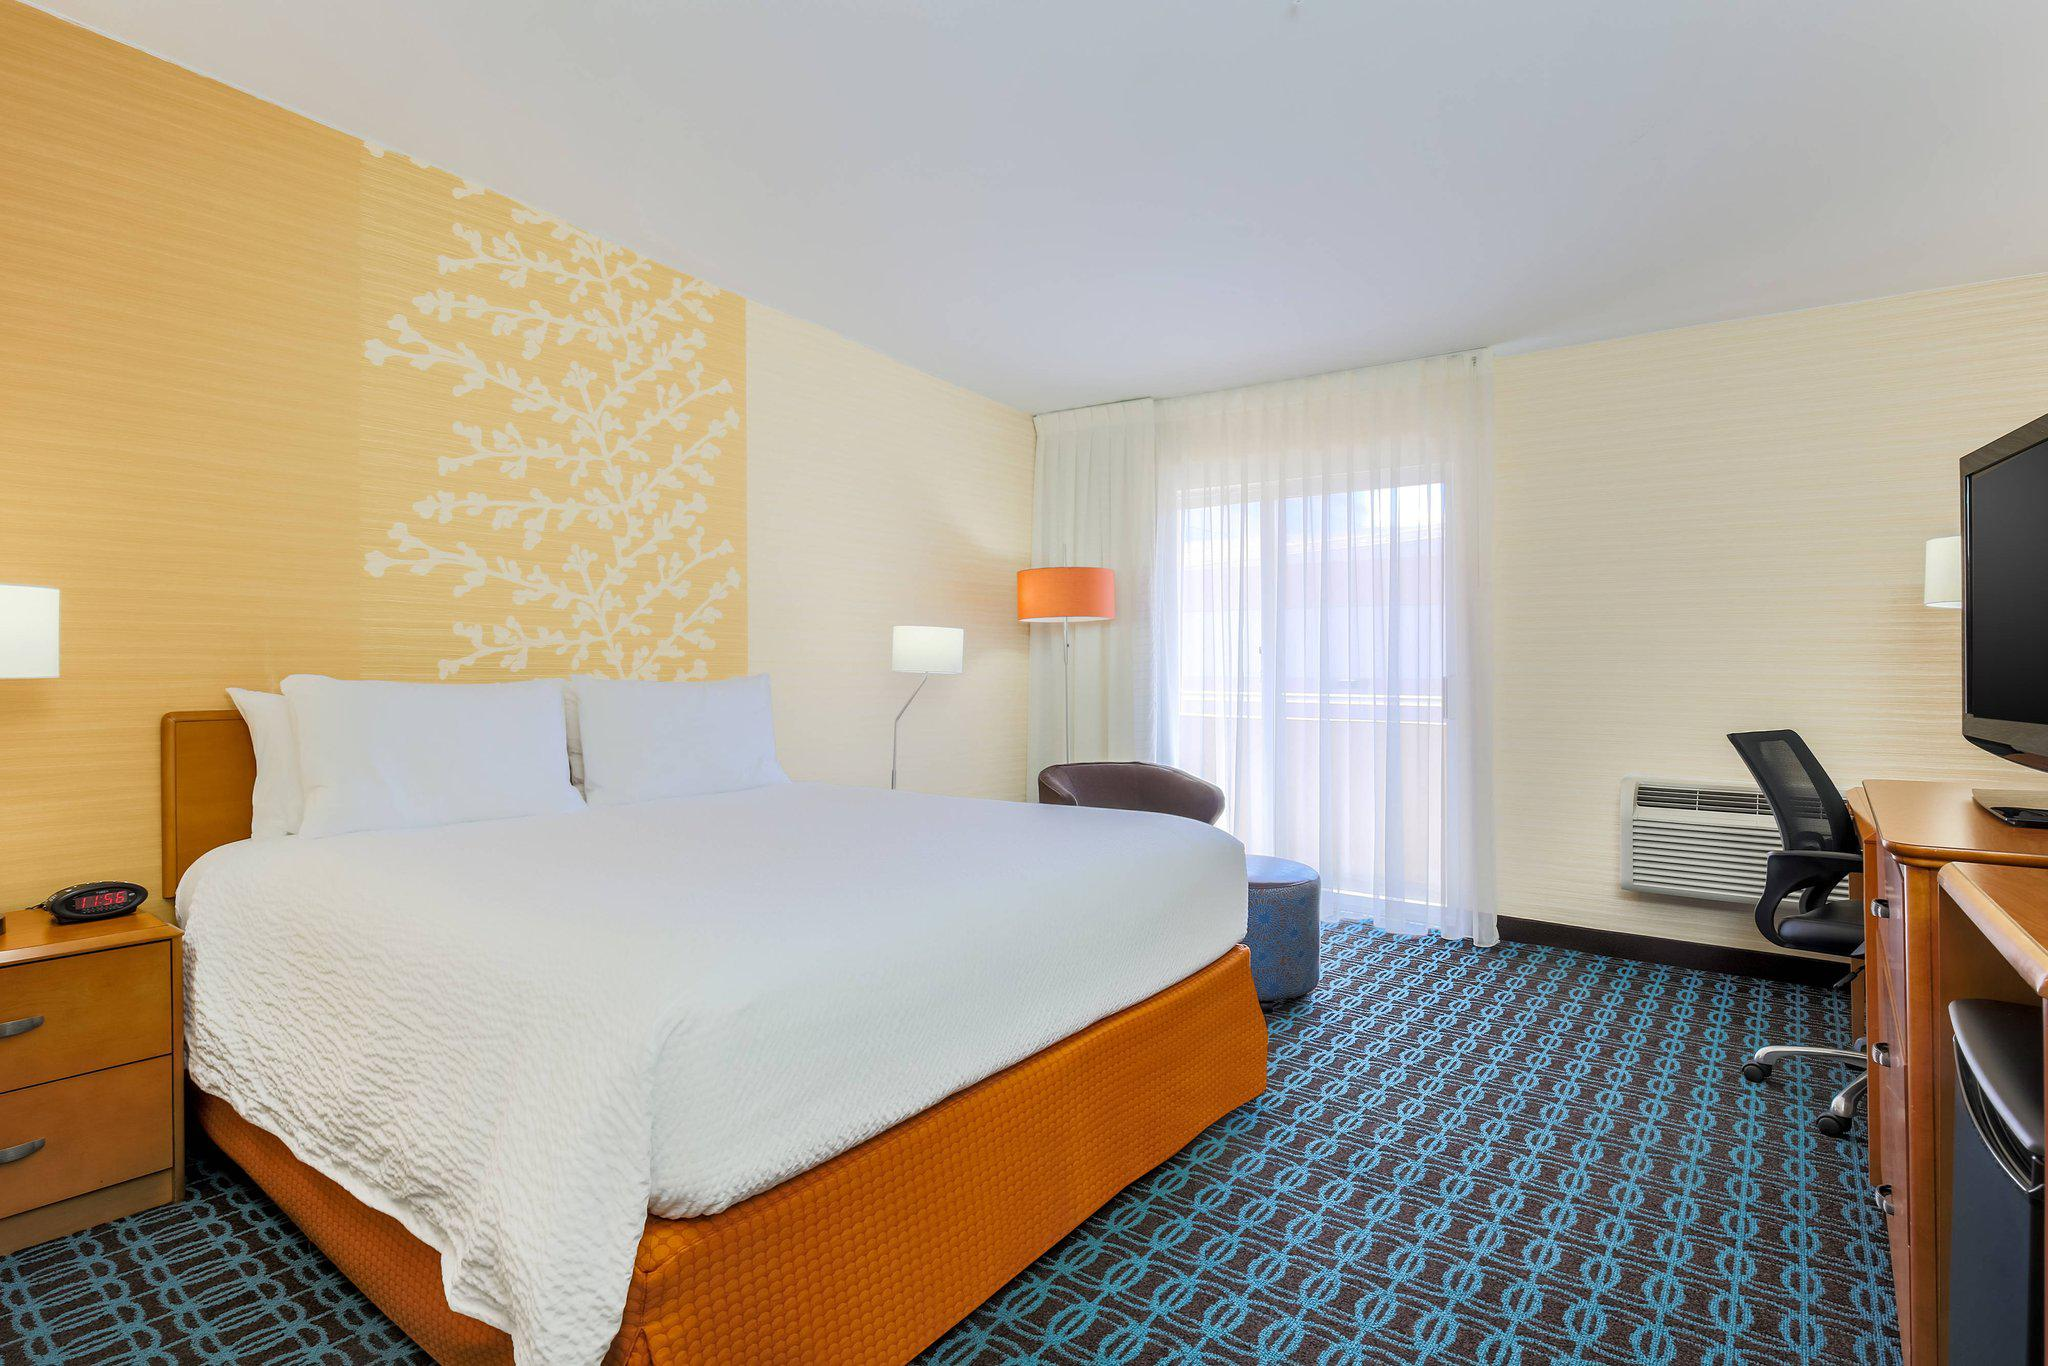 Fairfield Inn & Suites by Marriott San Jose Airport